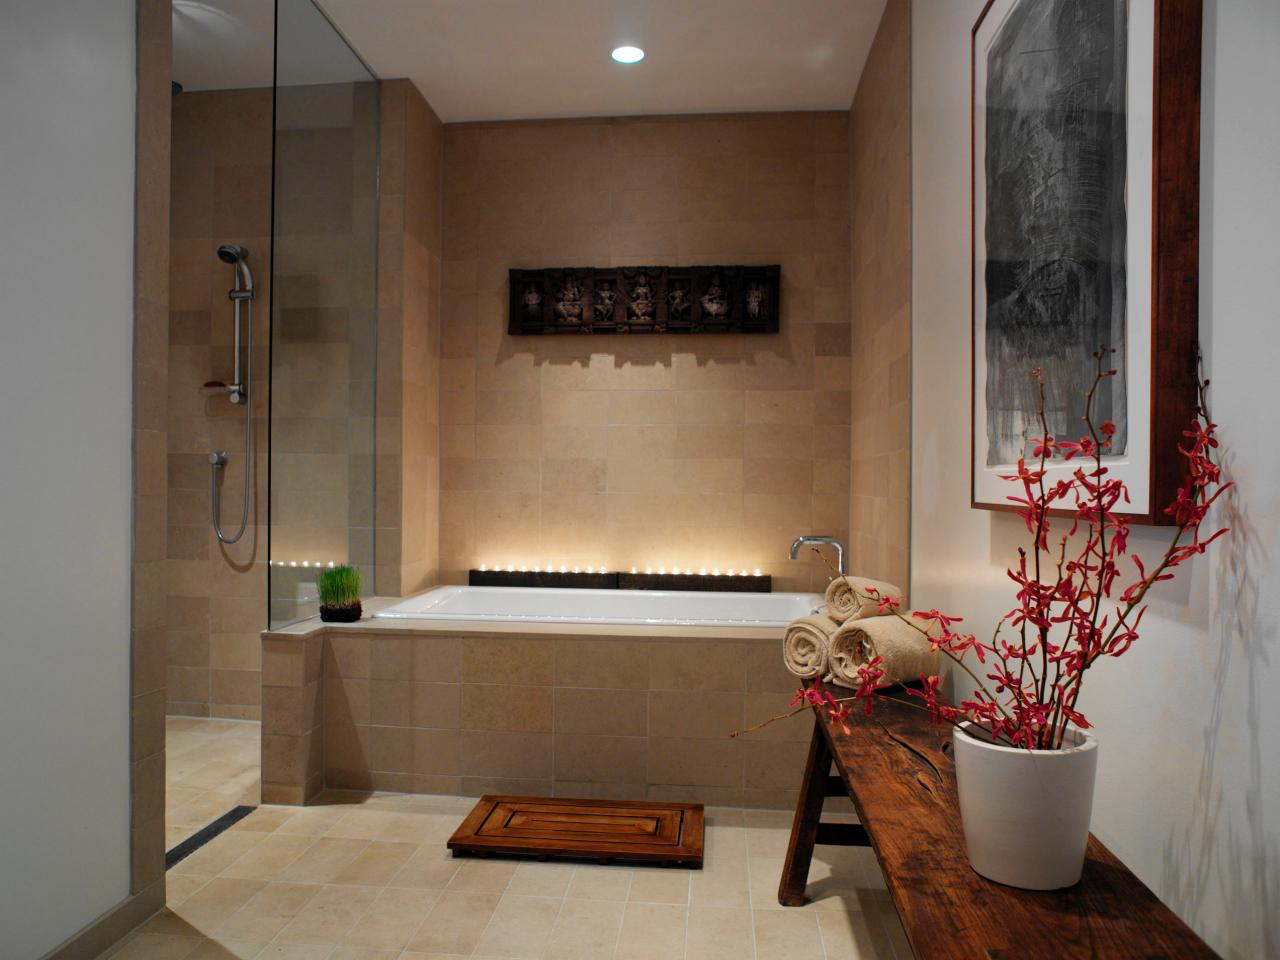 Spa like windowless bathroom The Best Ways to Lighten Up a Windowless Bathroom  Adorable Home